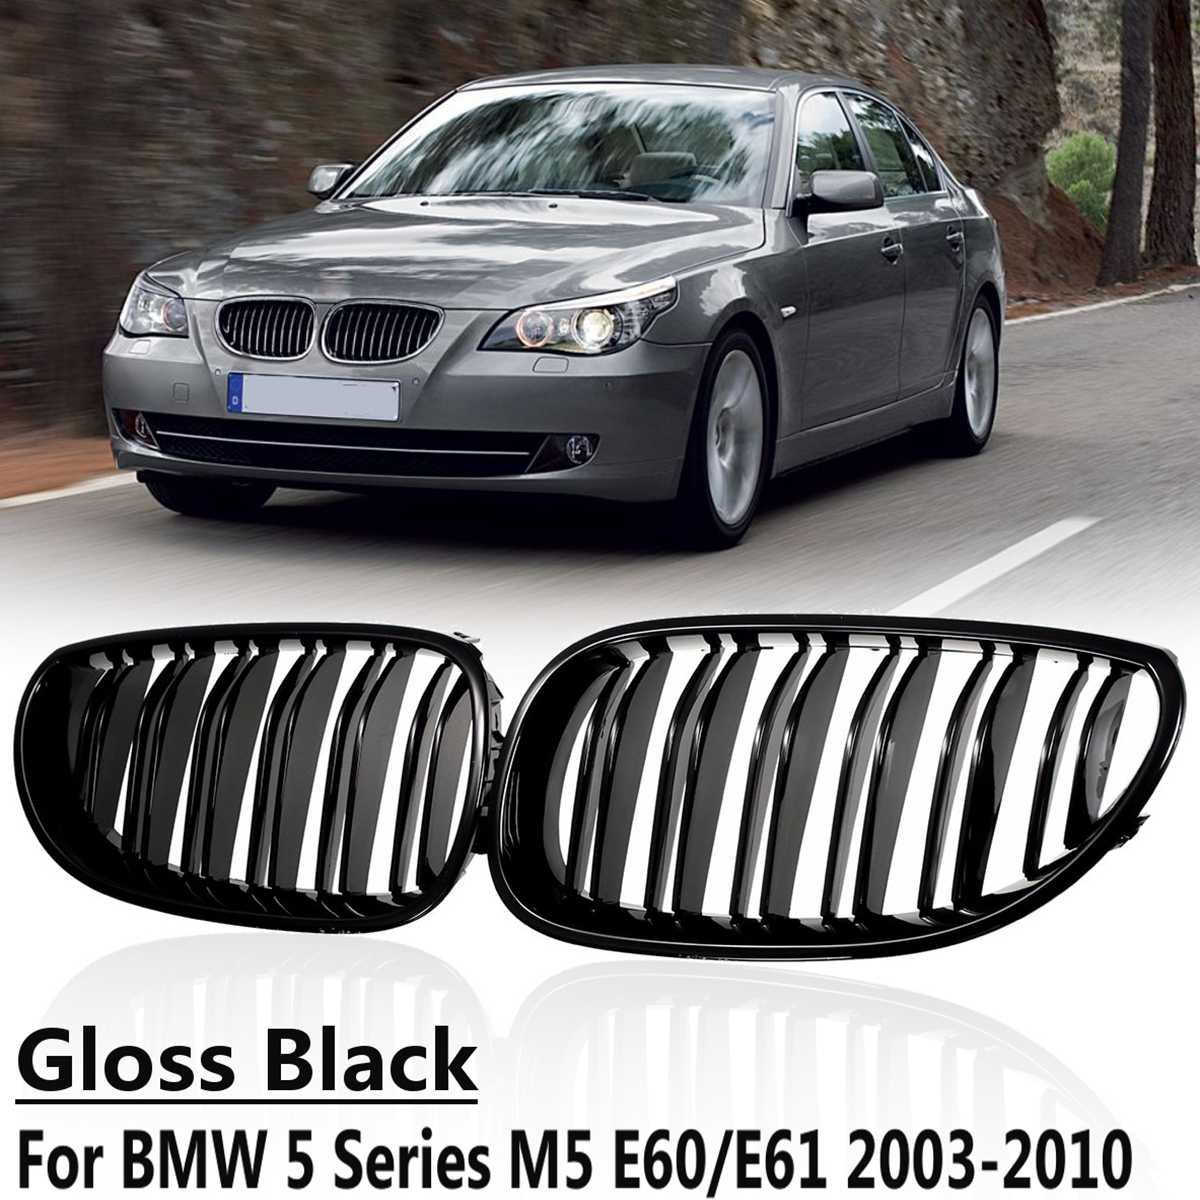 Gloss Black Diamond Style Car Front Sport Kidney Grilles Grill For Bmw 5 Series M5 E60 E61 2003 2004 2005 2006 2007 08 09 2010 Kidney Grill Sport Grillgrill For Bmw Aliexpress